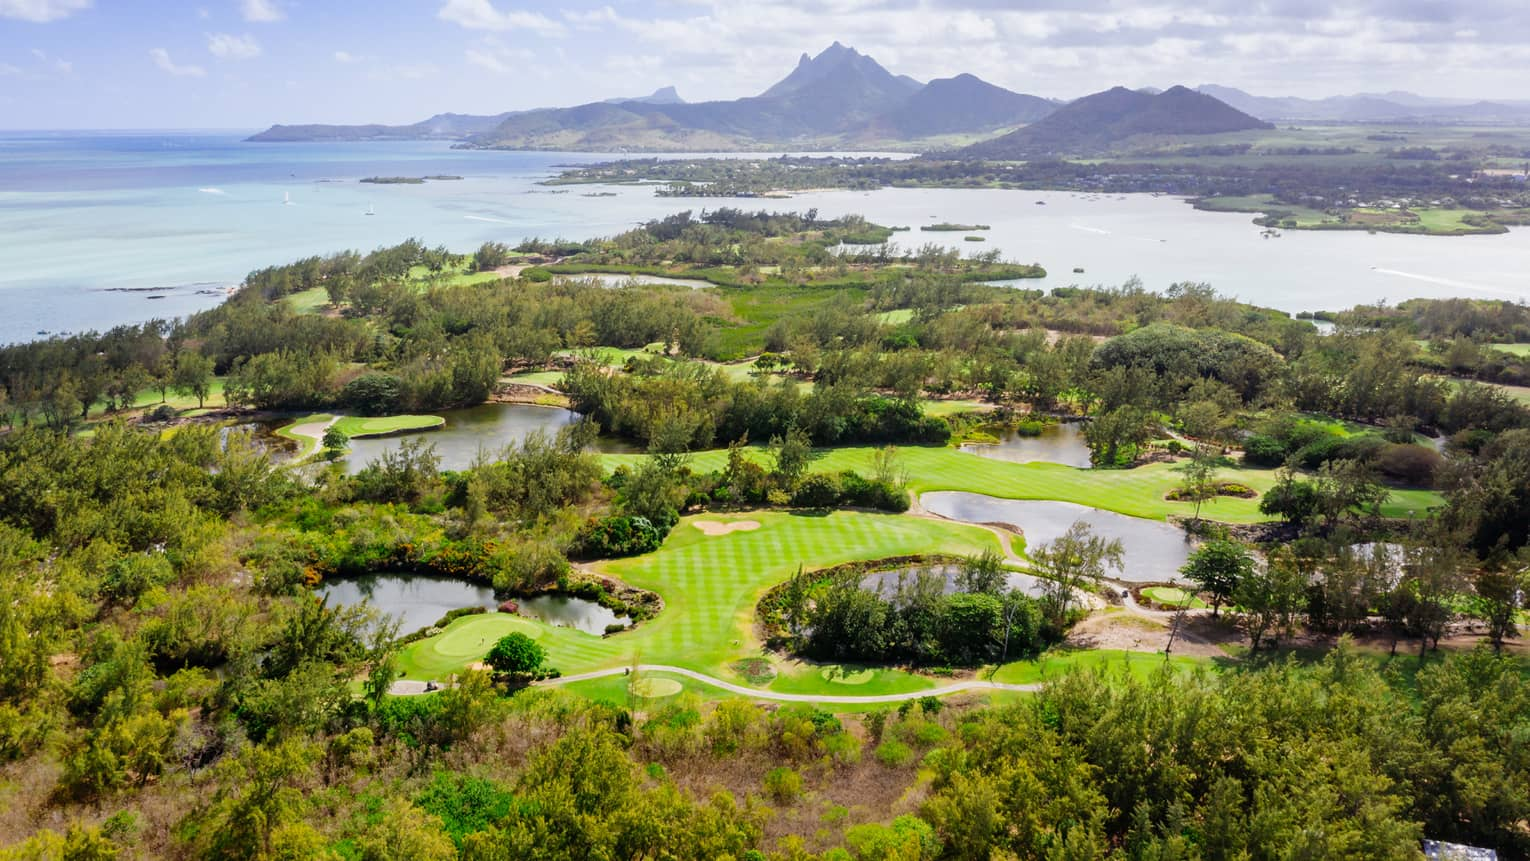 Aerial view of golf course with Indian Ocean and mountains in backdrop